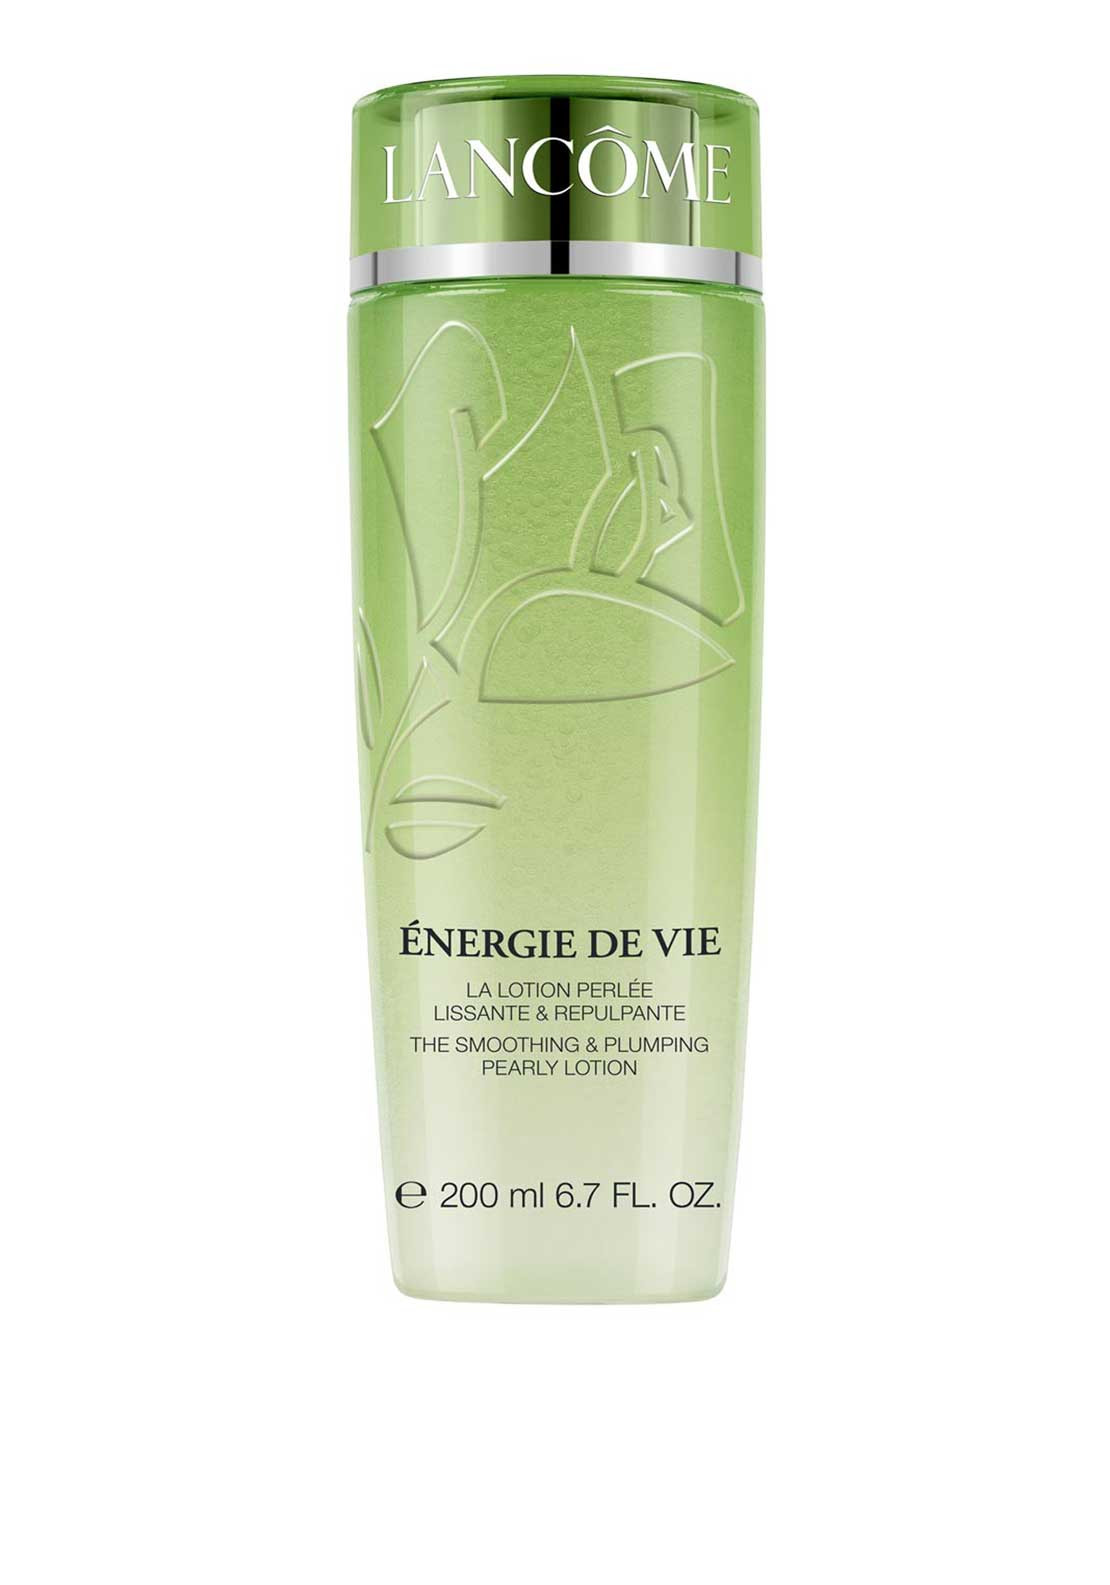 Lancome Energie de Vie Pearly Wake Up Lotion, 200ml